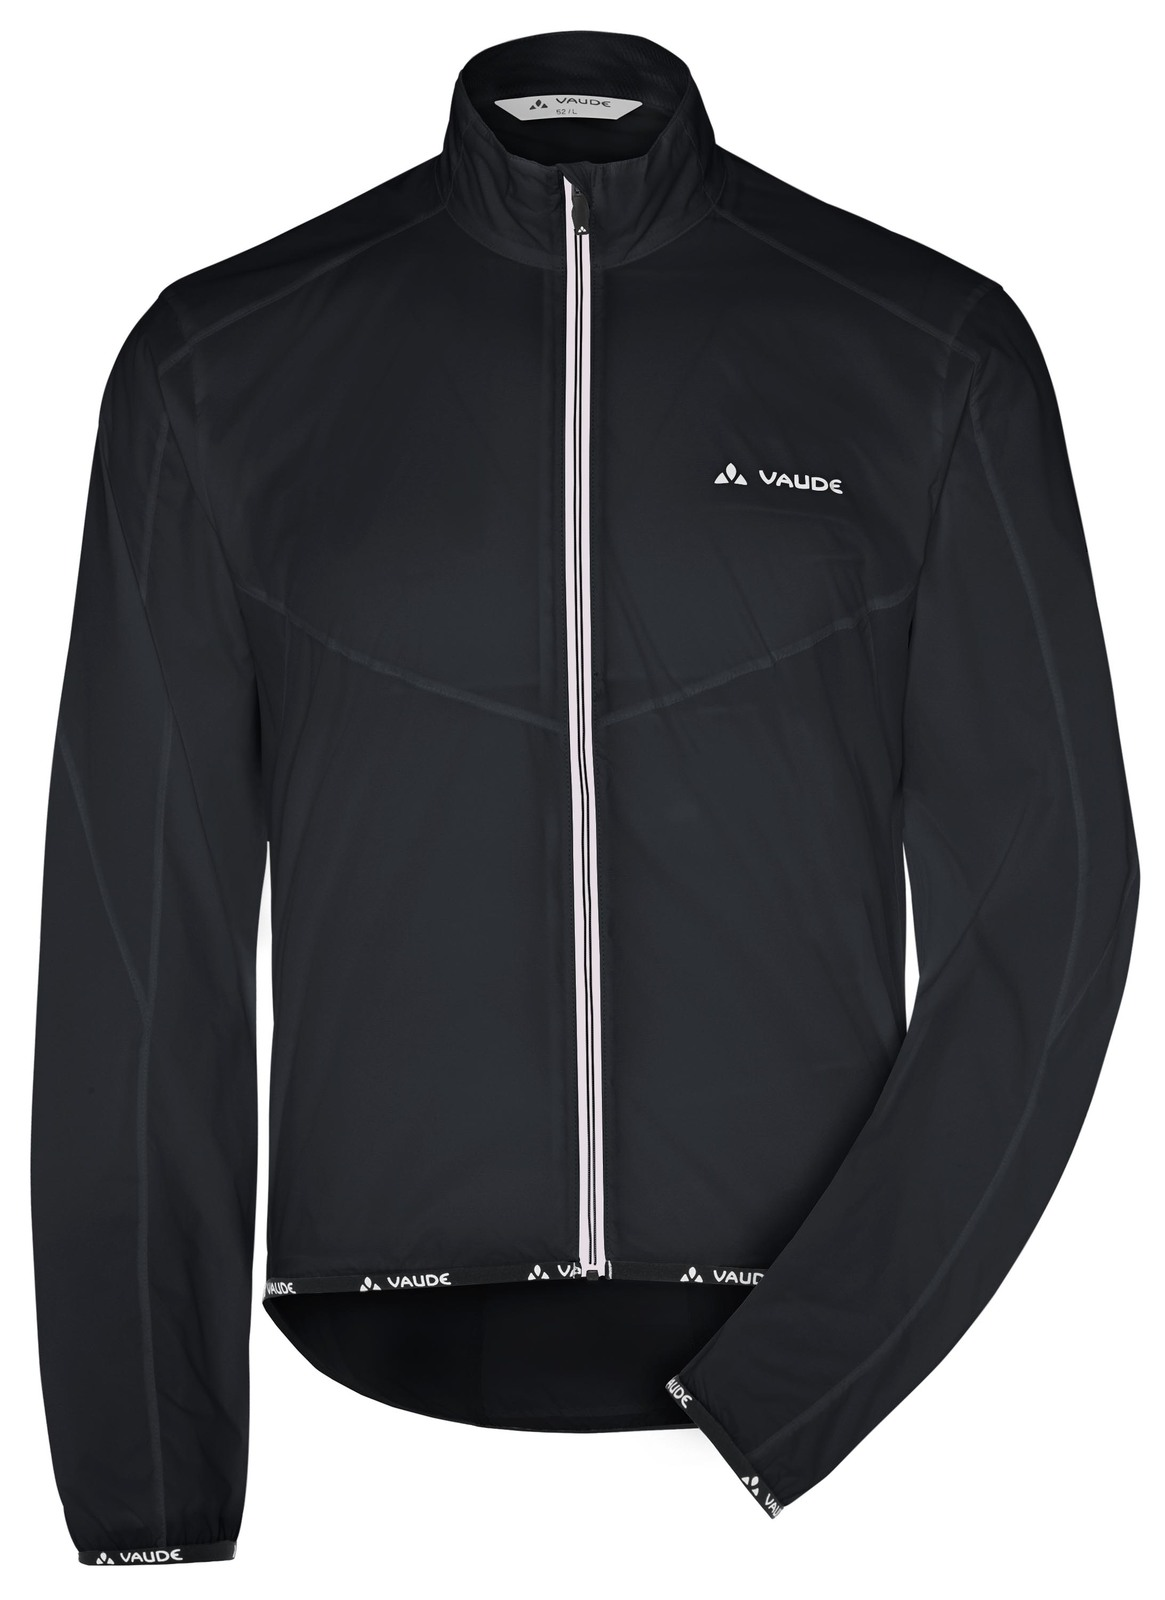 VAUDE Men´s Air Jacket II black Größe M - VAUDE Men´s Air Jacket II black Größe M